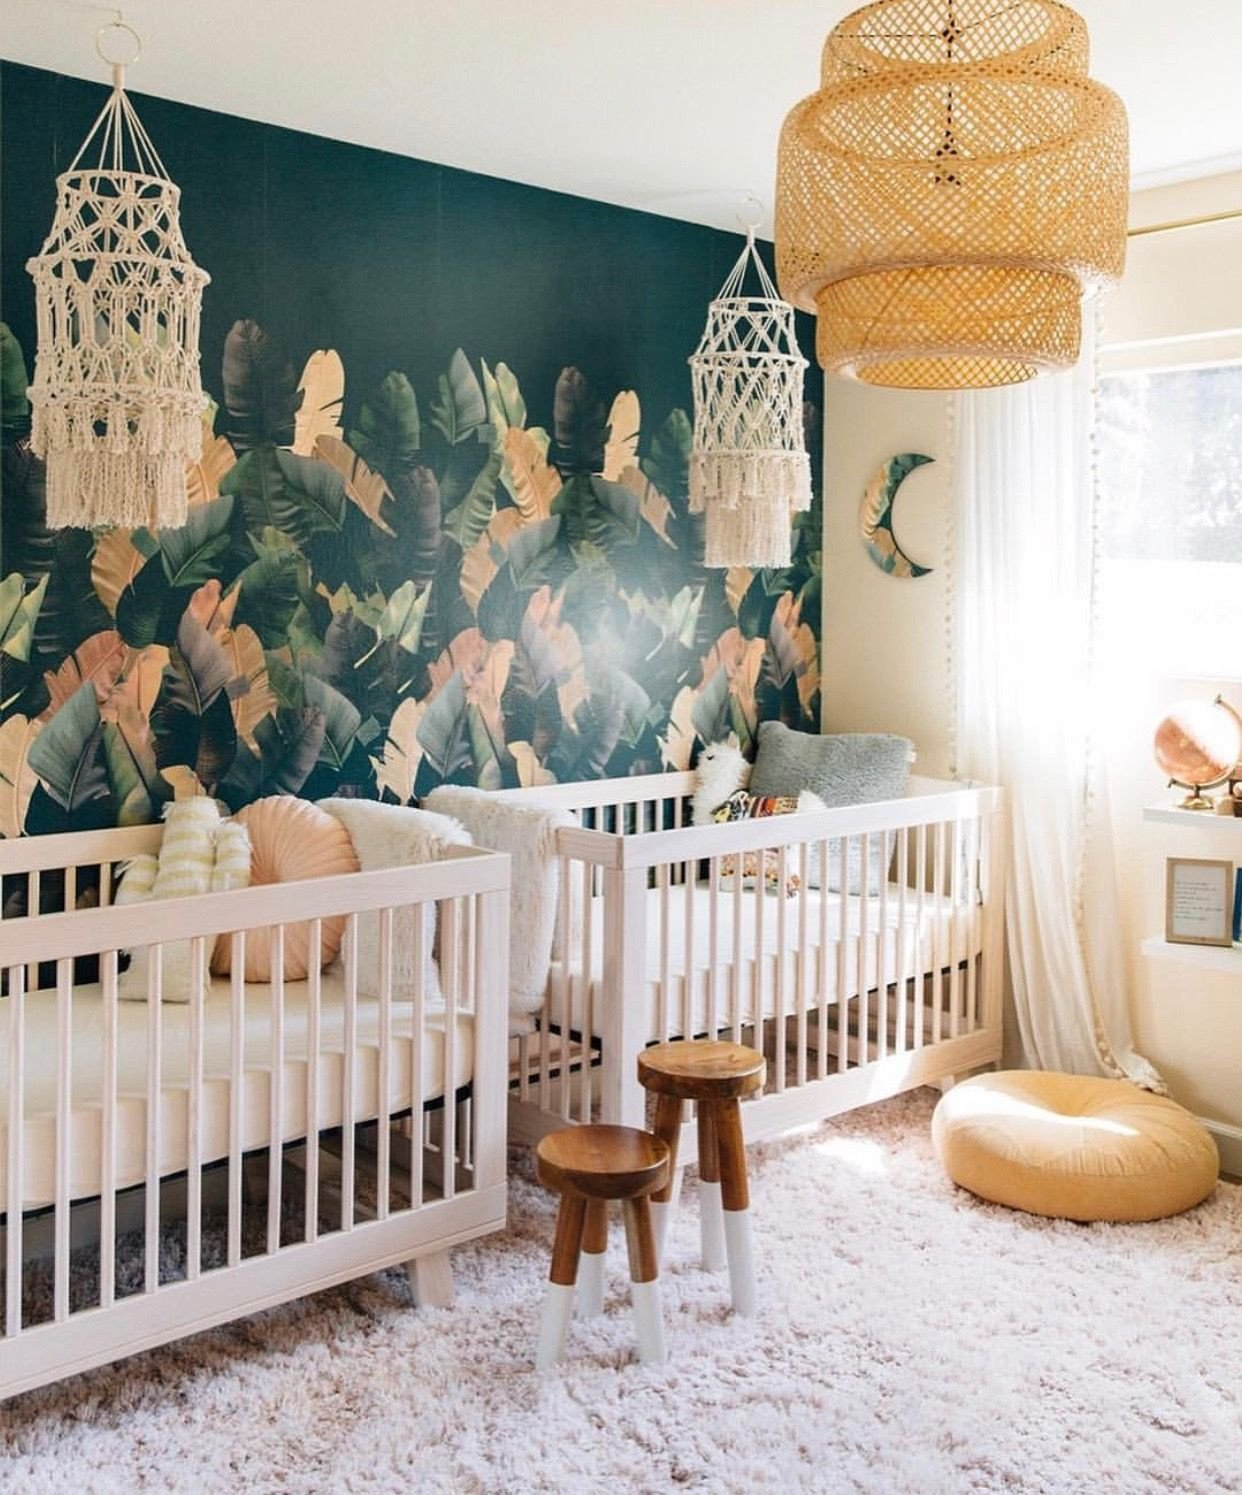 Baby Girl Bedroom Decor Awesome Pin by Rachel andrew On Bump Style and Babies